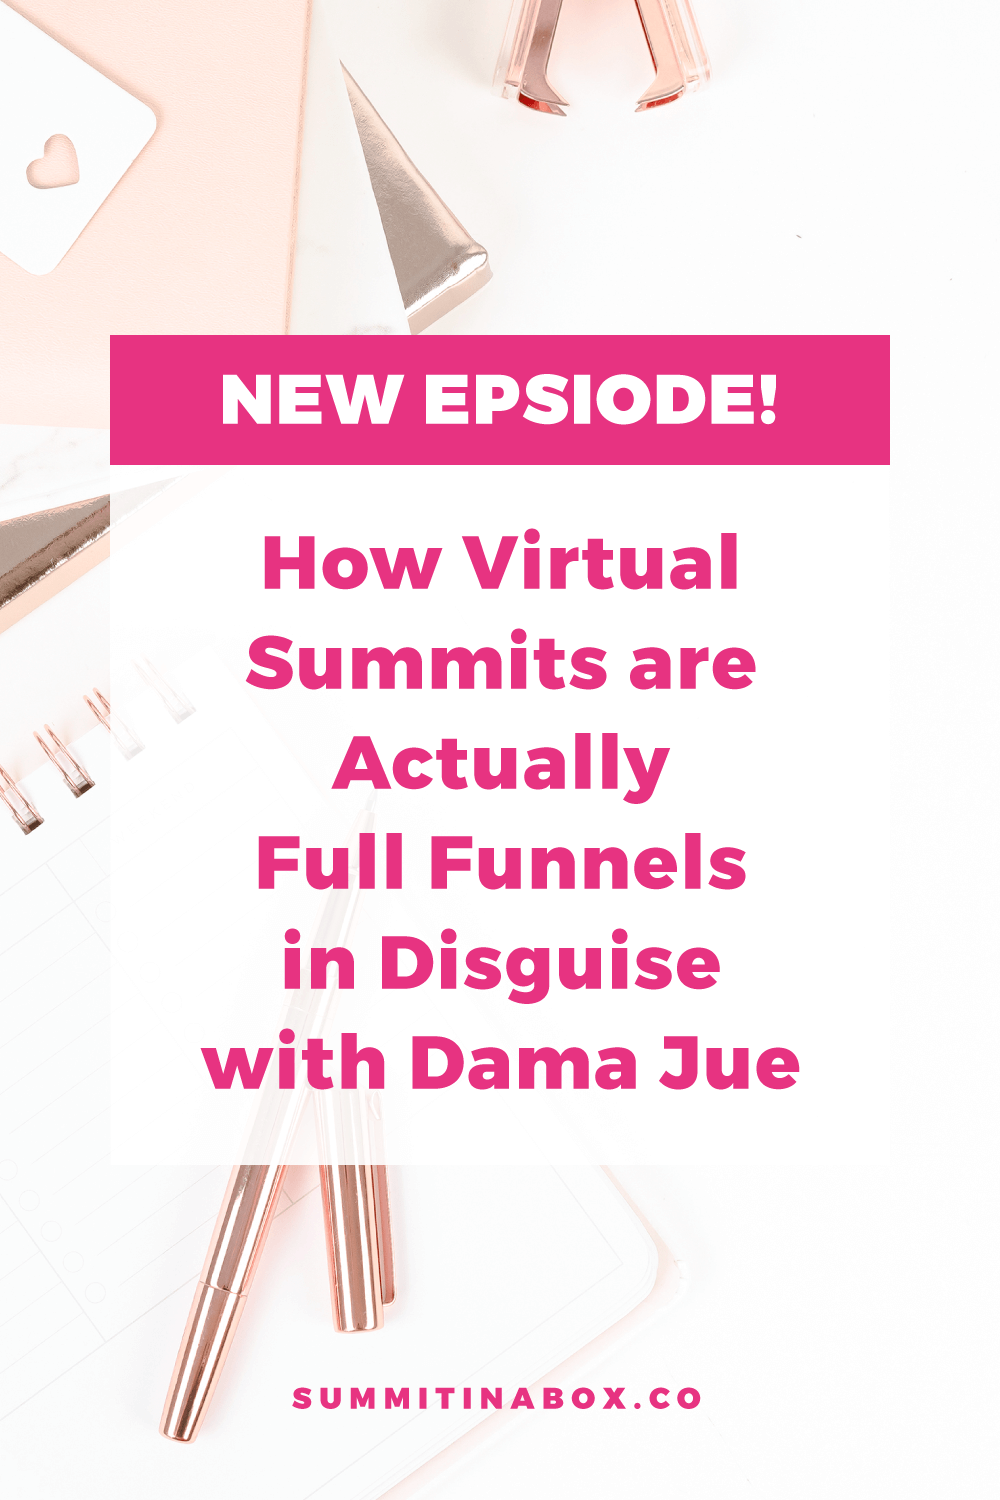 Many summit hosts only think as far as the list growth and all-access pass revenue summits bring. But virtual summits are actually full funnels in disguise.